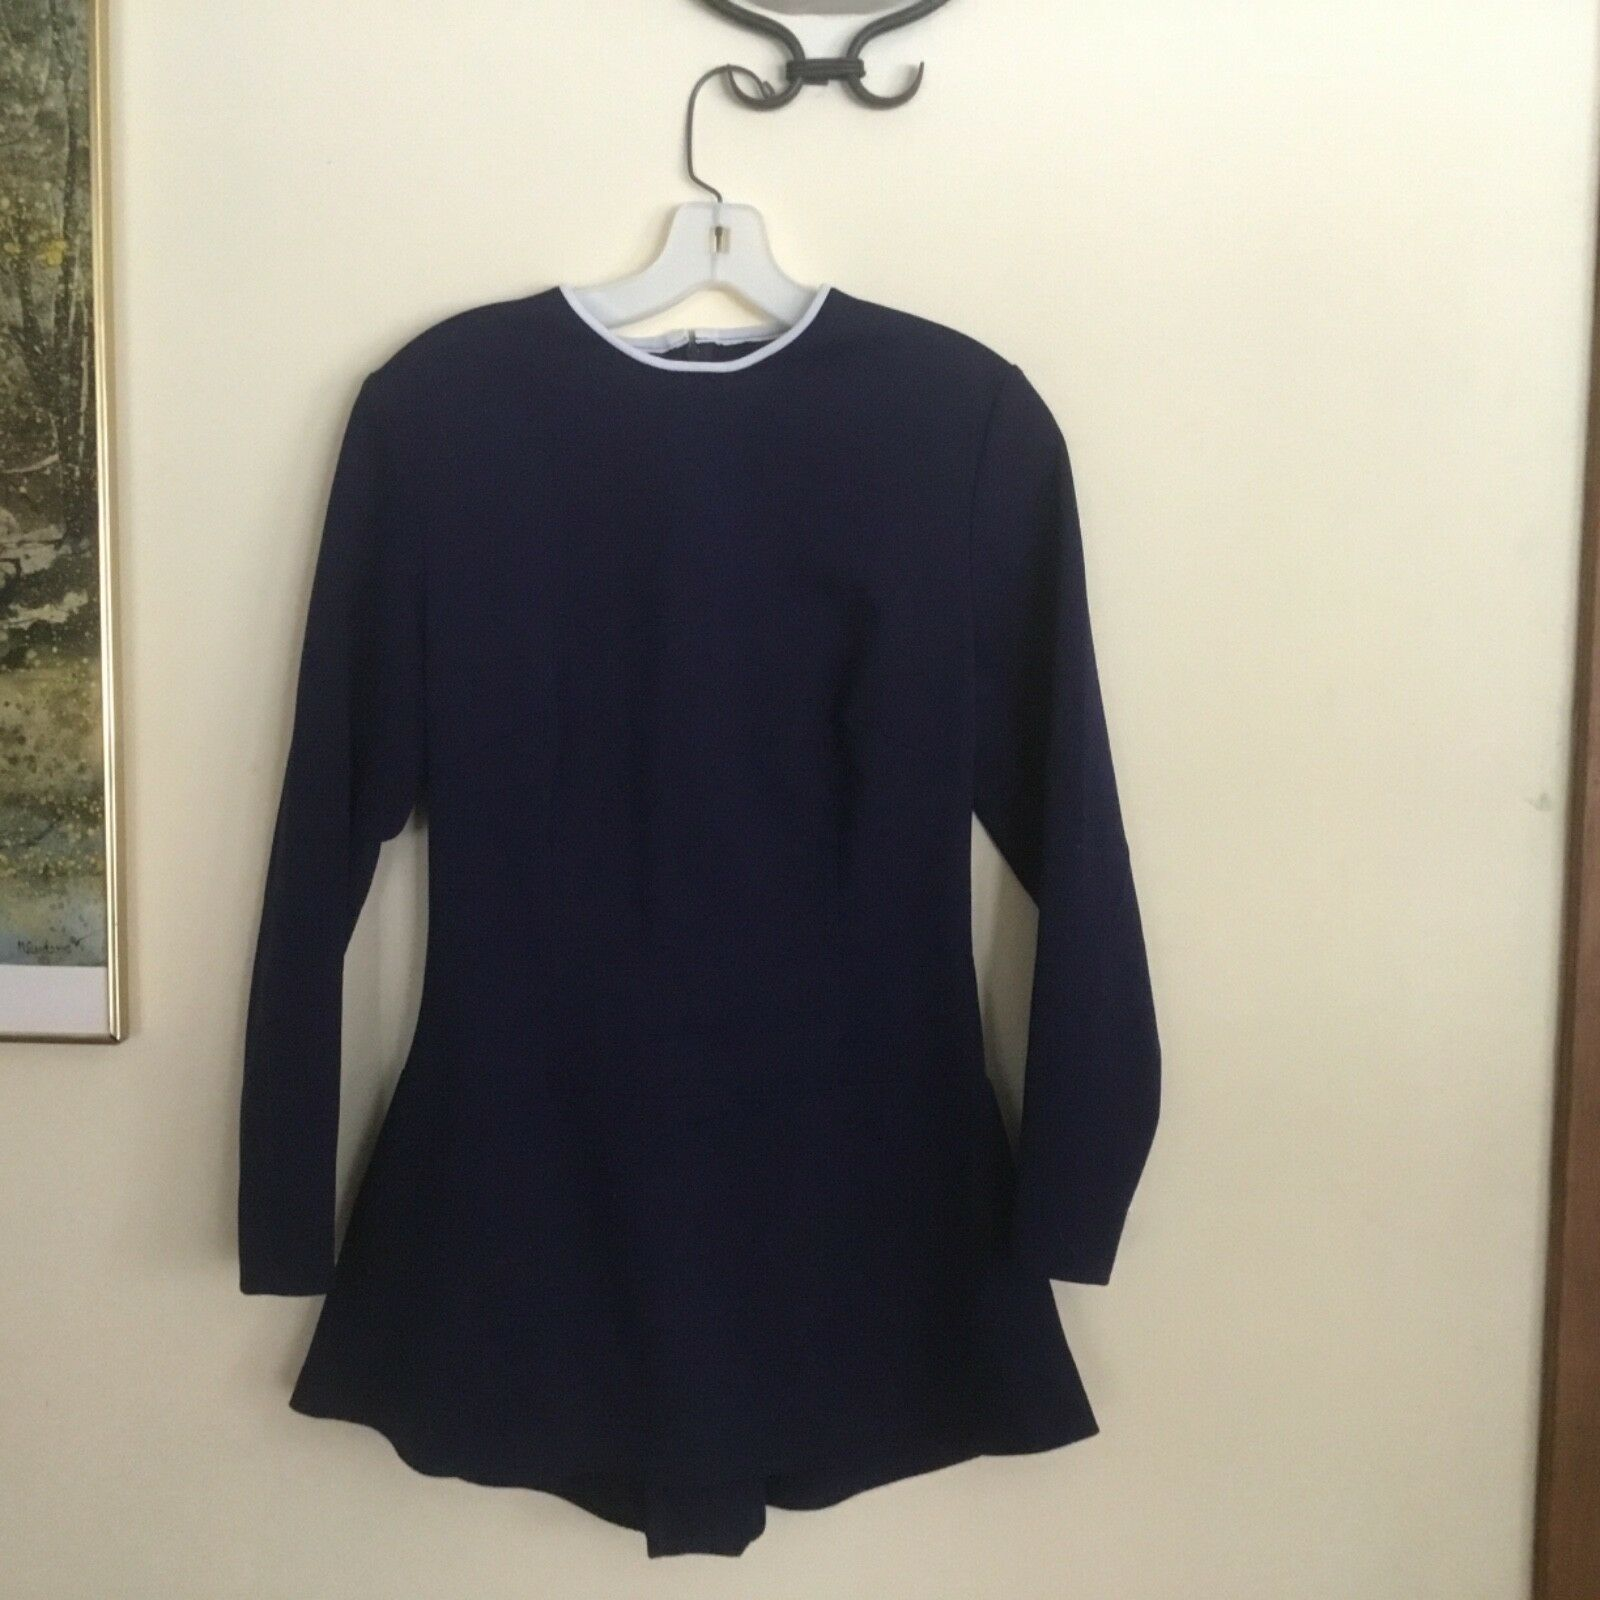 Classic, tasteful navy adult teen skating dress, size large, perfect test dress